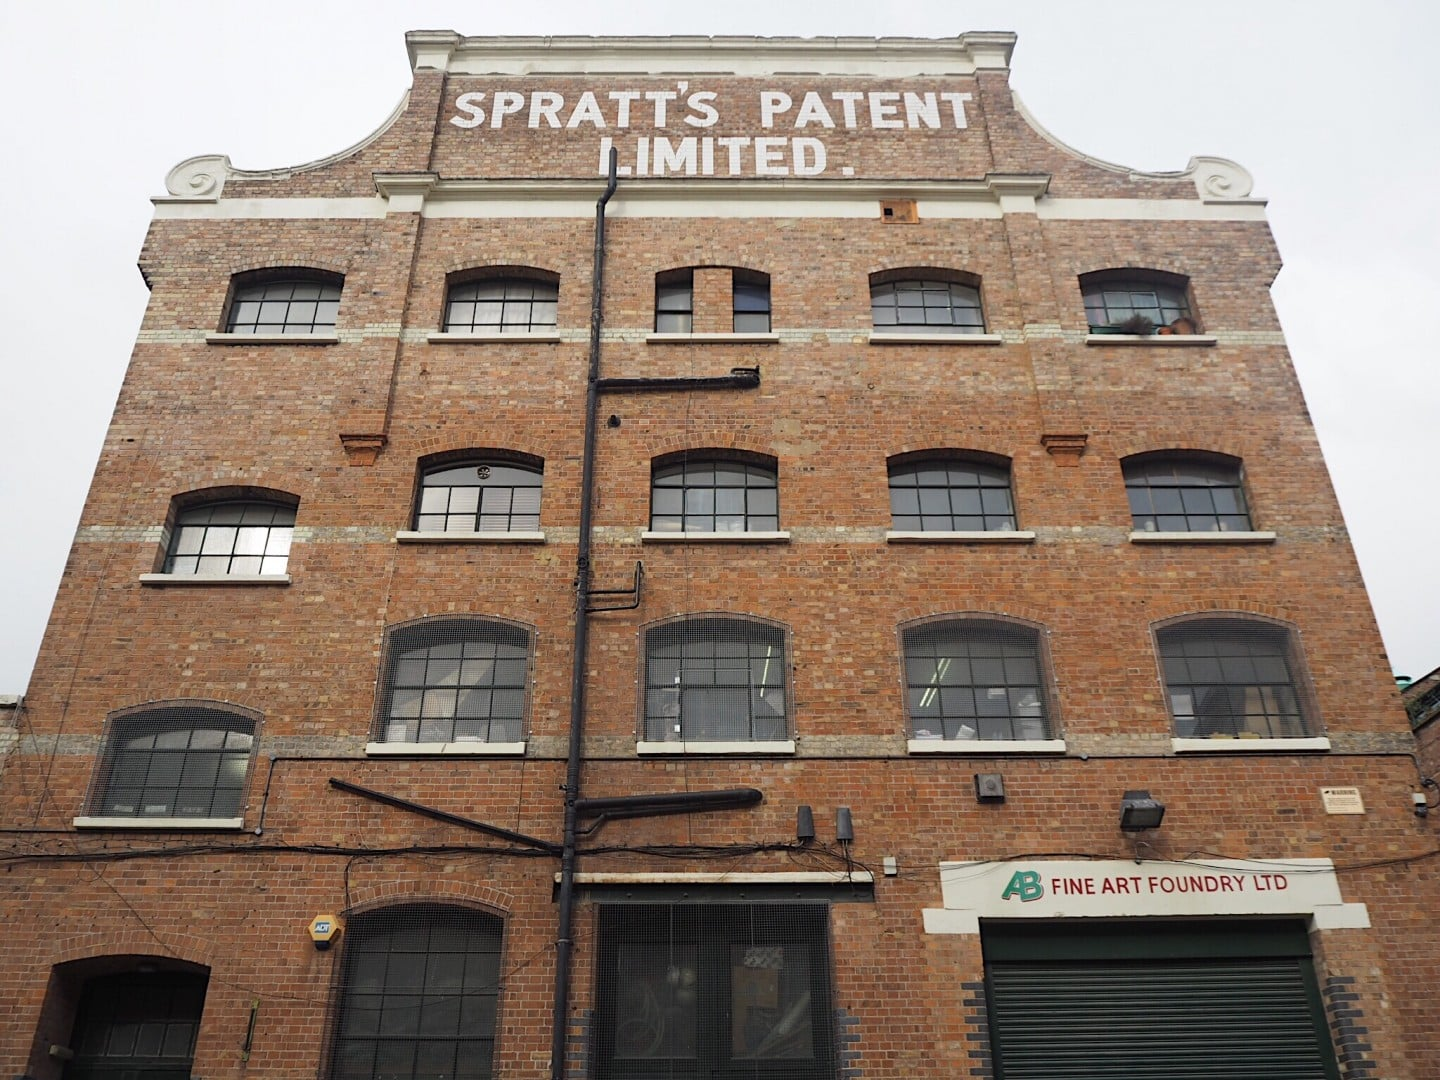 Spratts Dog Biscuit factory